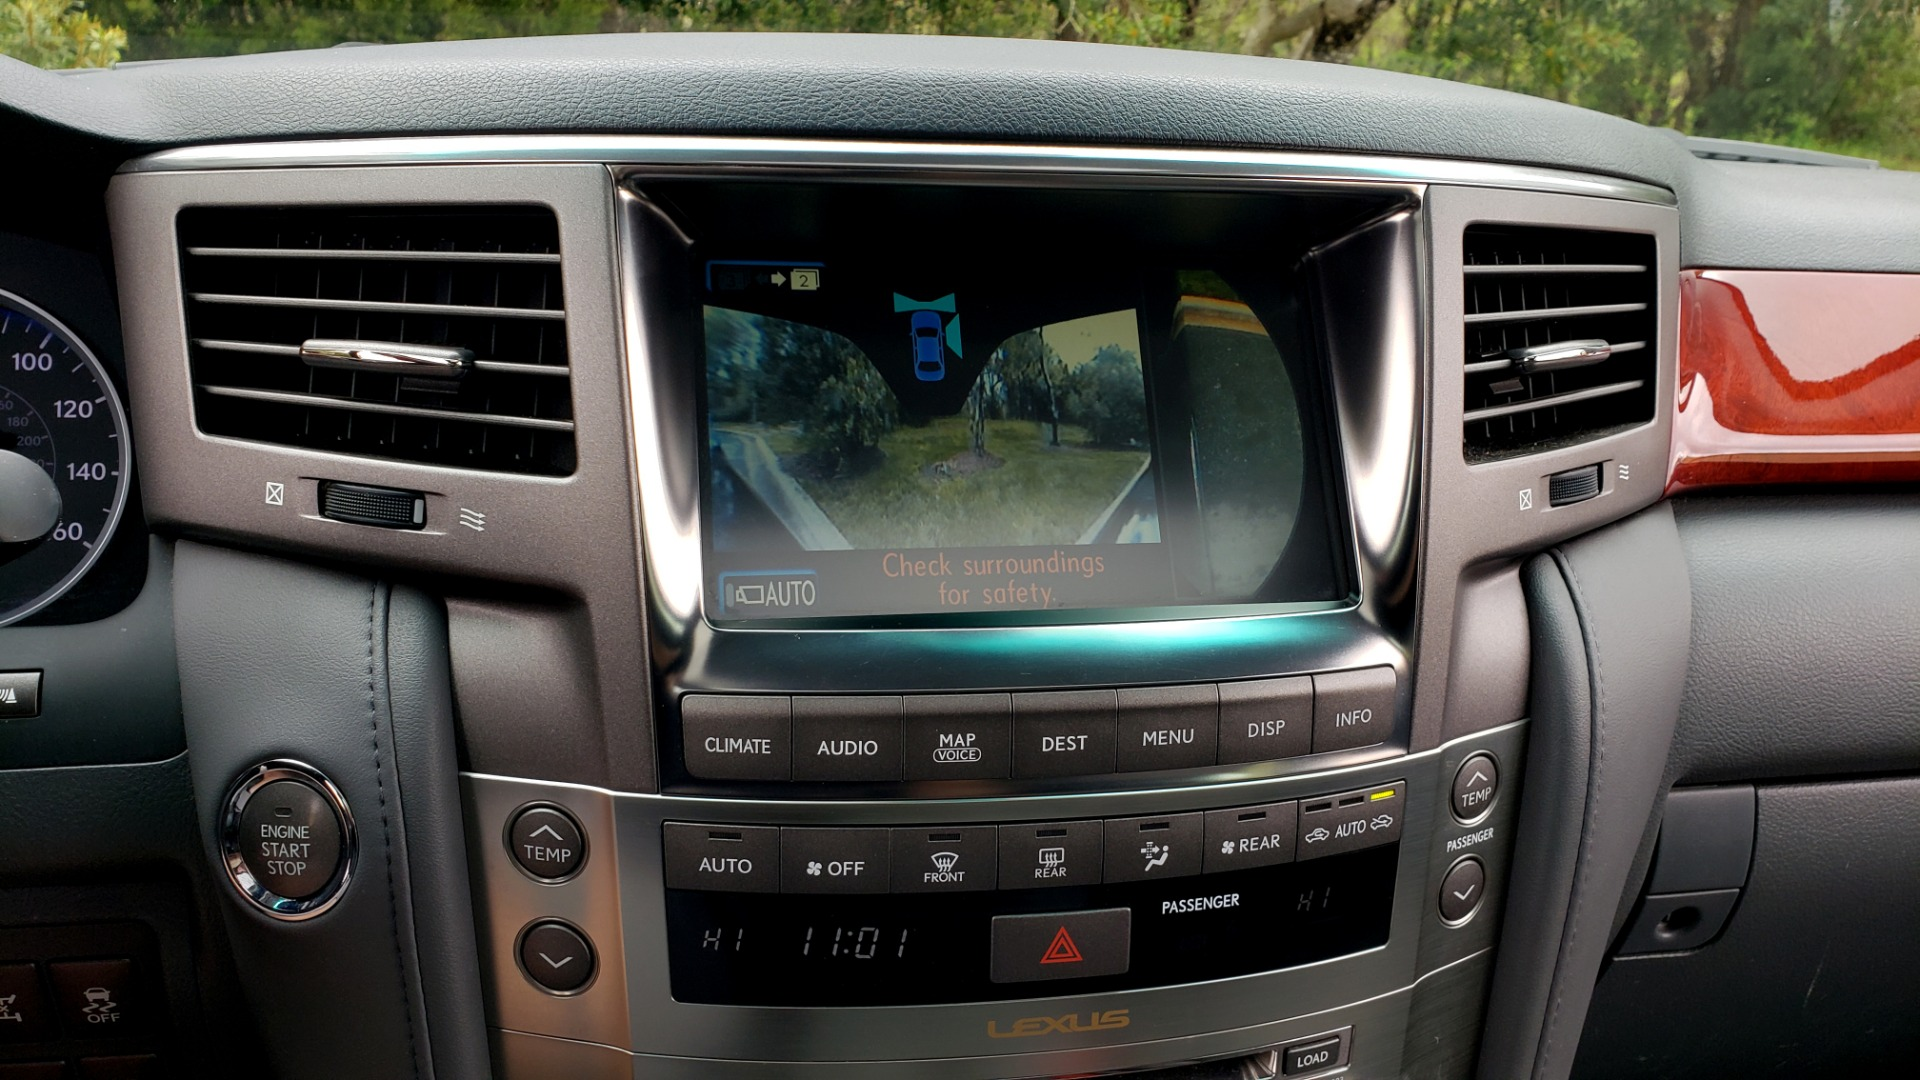 Used 2008 Lexus LX 570 4WD / TECH PKG / NAV / SUNROOF / MARK LEVINSON / PARK ASST for sale $22,995 at Formula Imports in Charlotte NC 28227 46